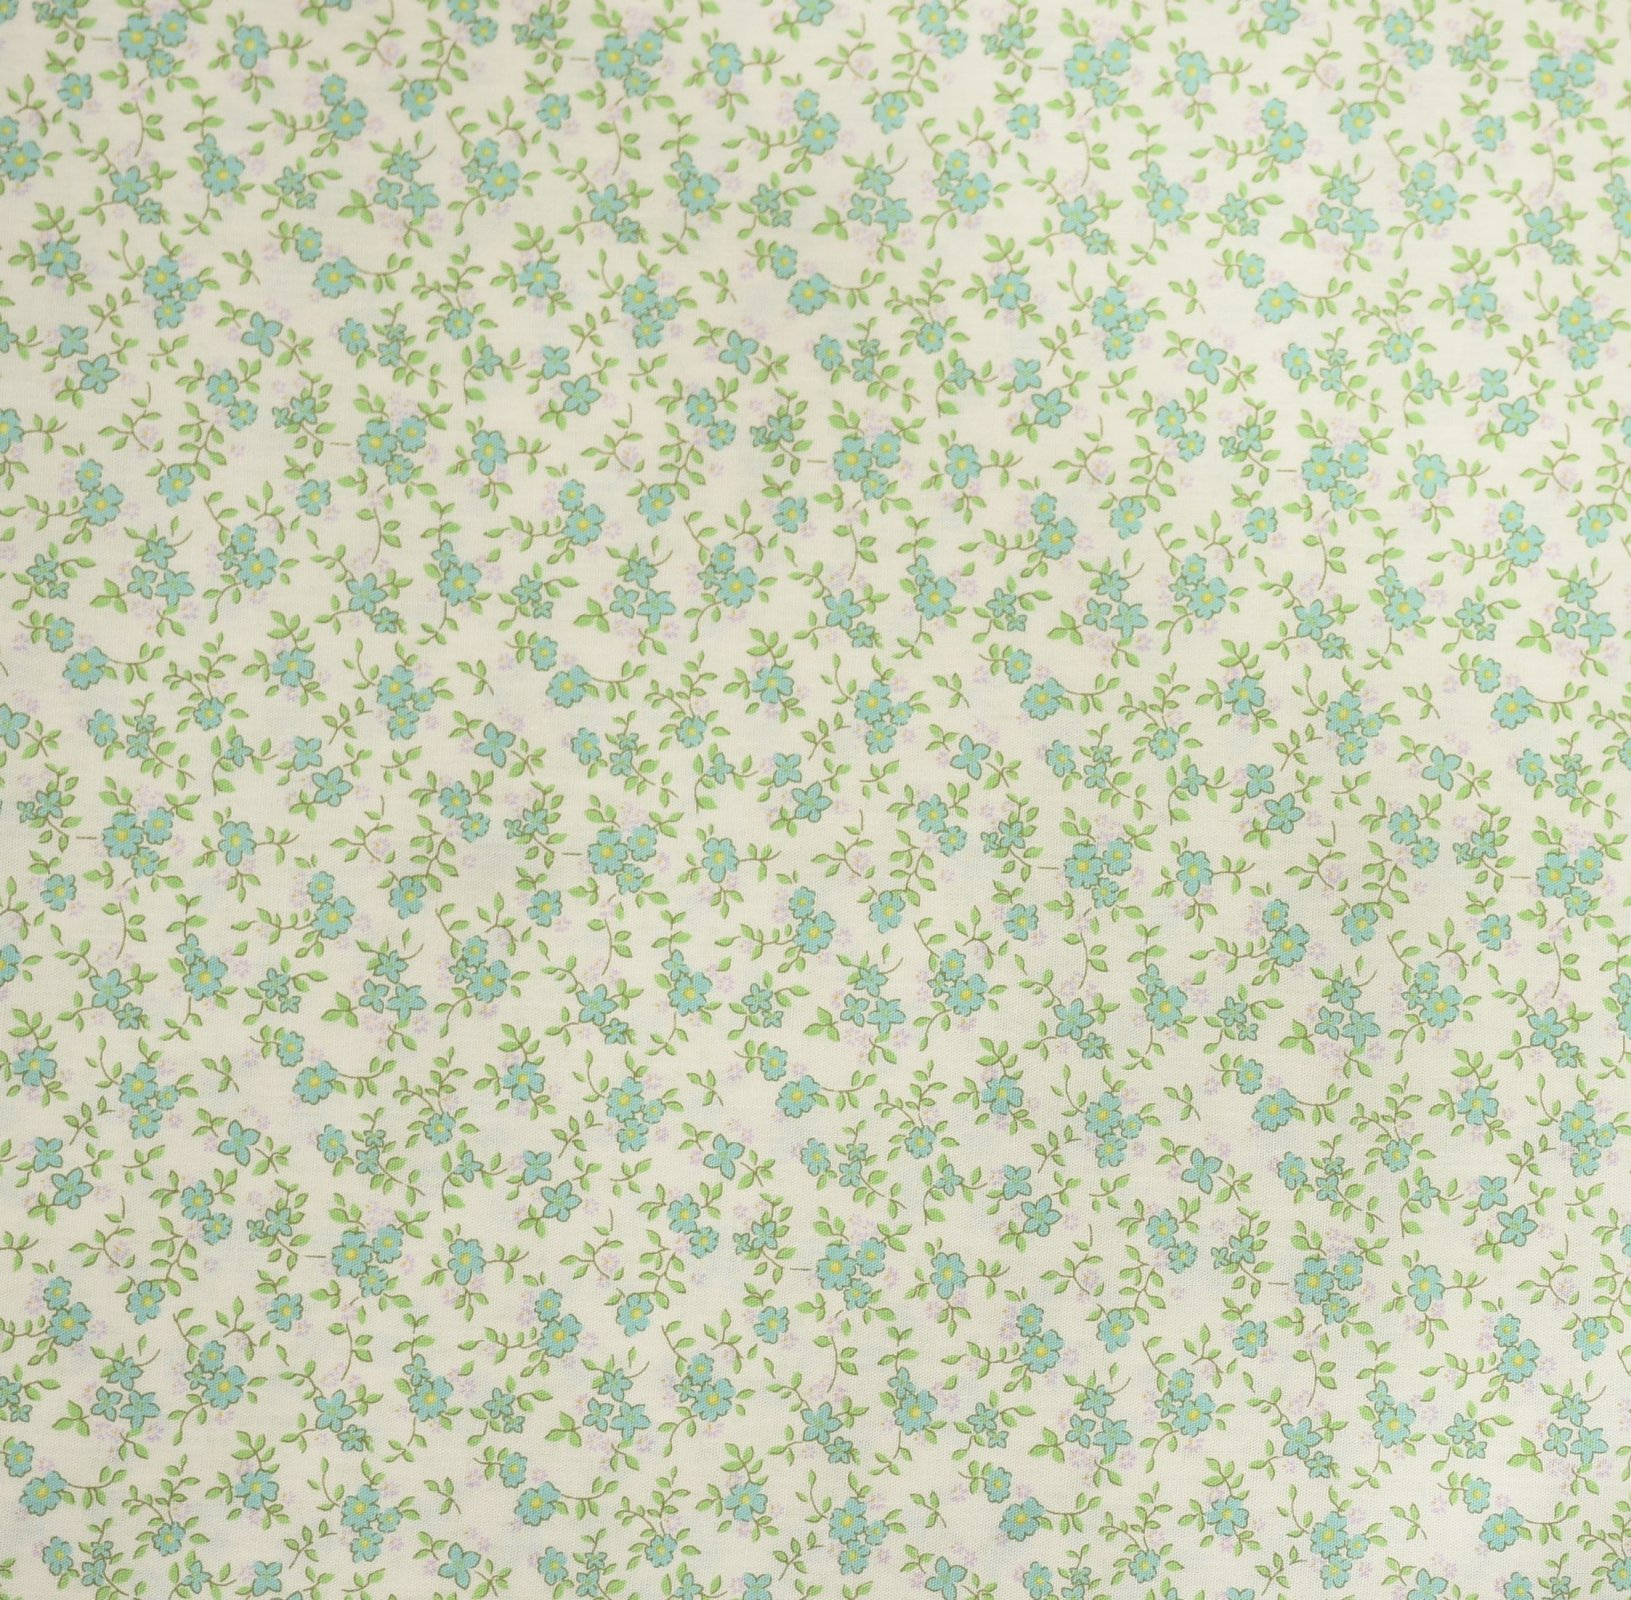 Handworks - Fiore Collection - Pretty Green Floral